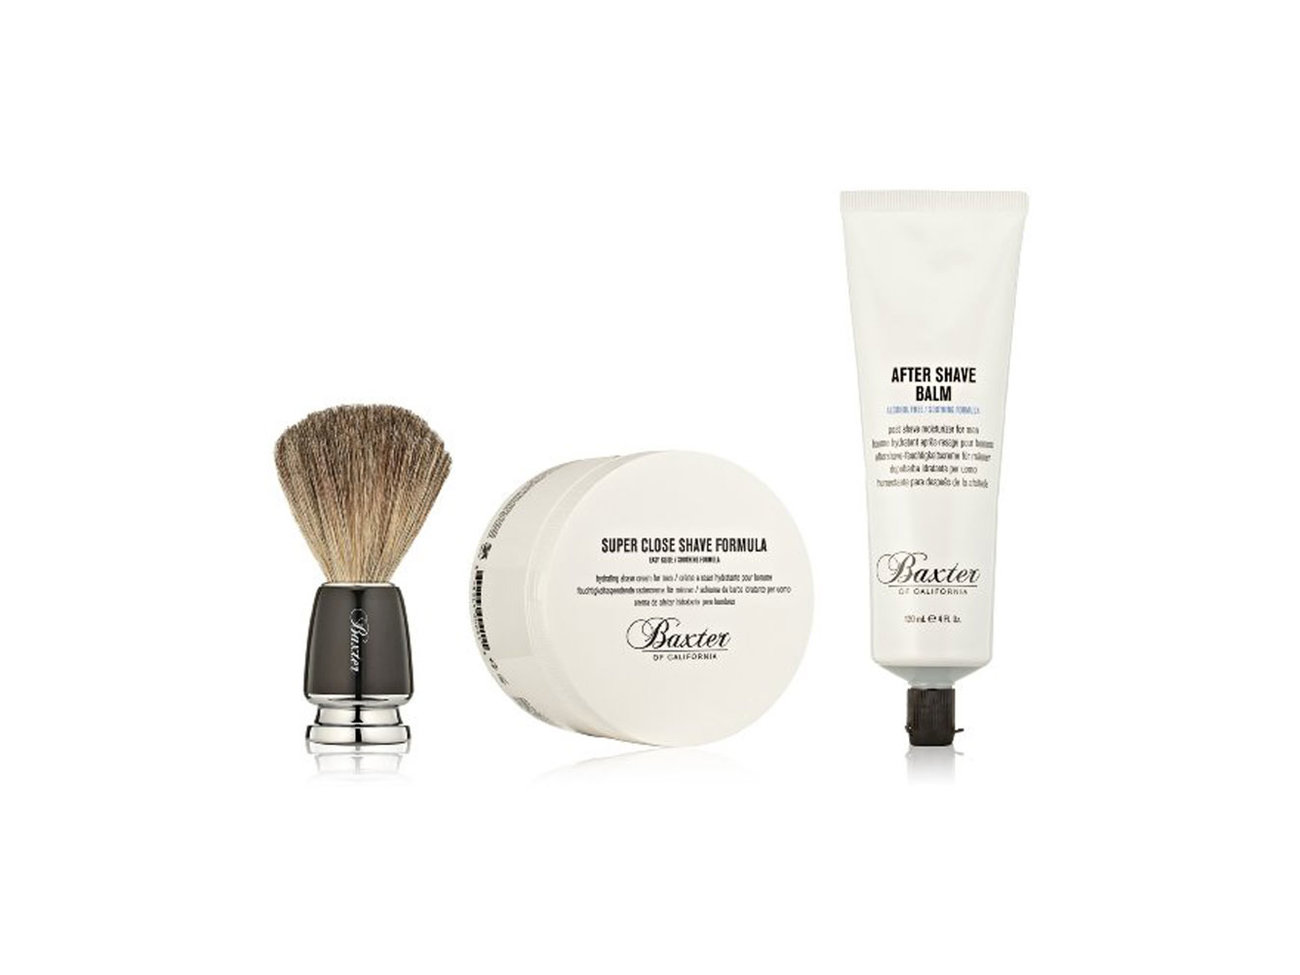 Baxter-California-Shave-Kit-amazon-prime-BESTSHOP1215.jpg